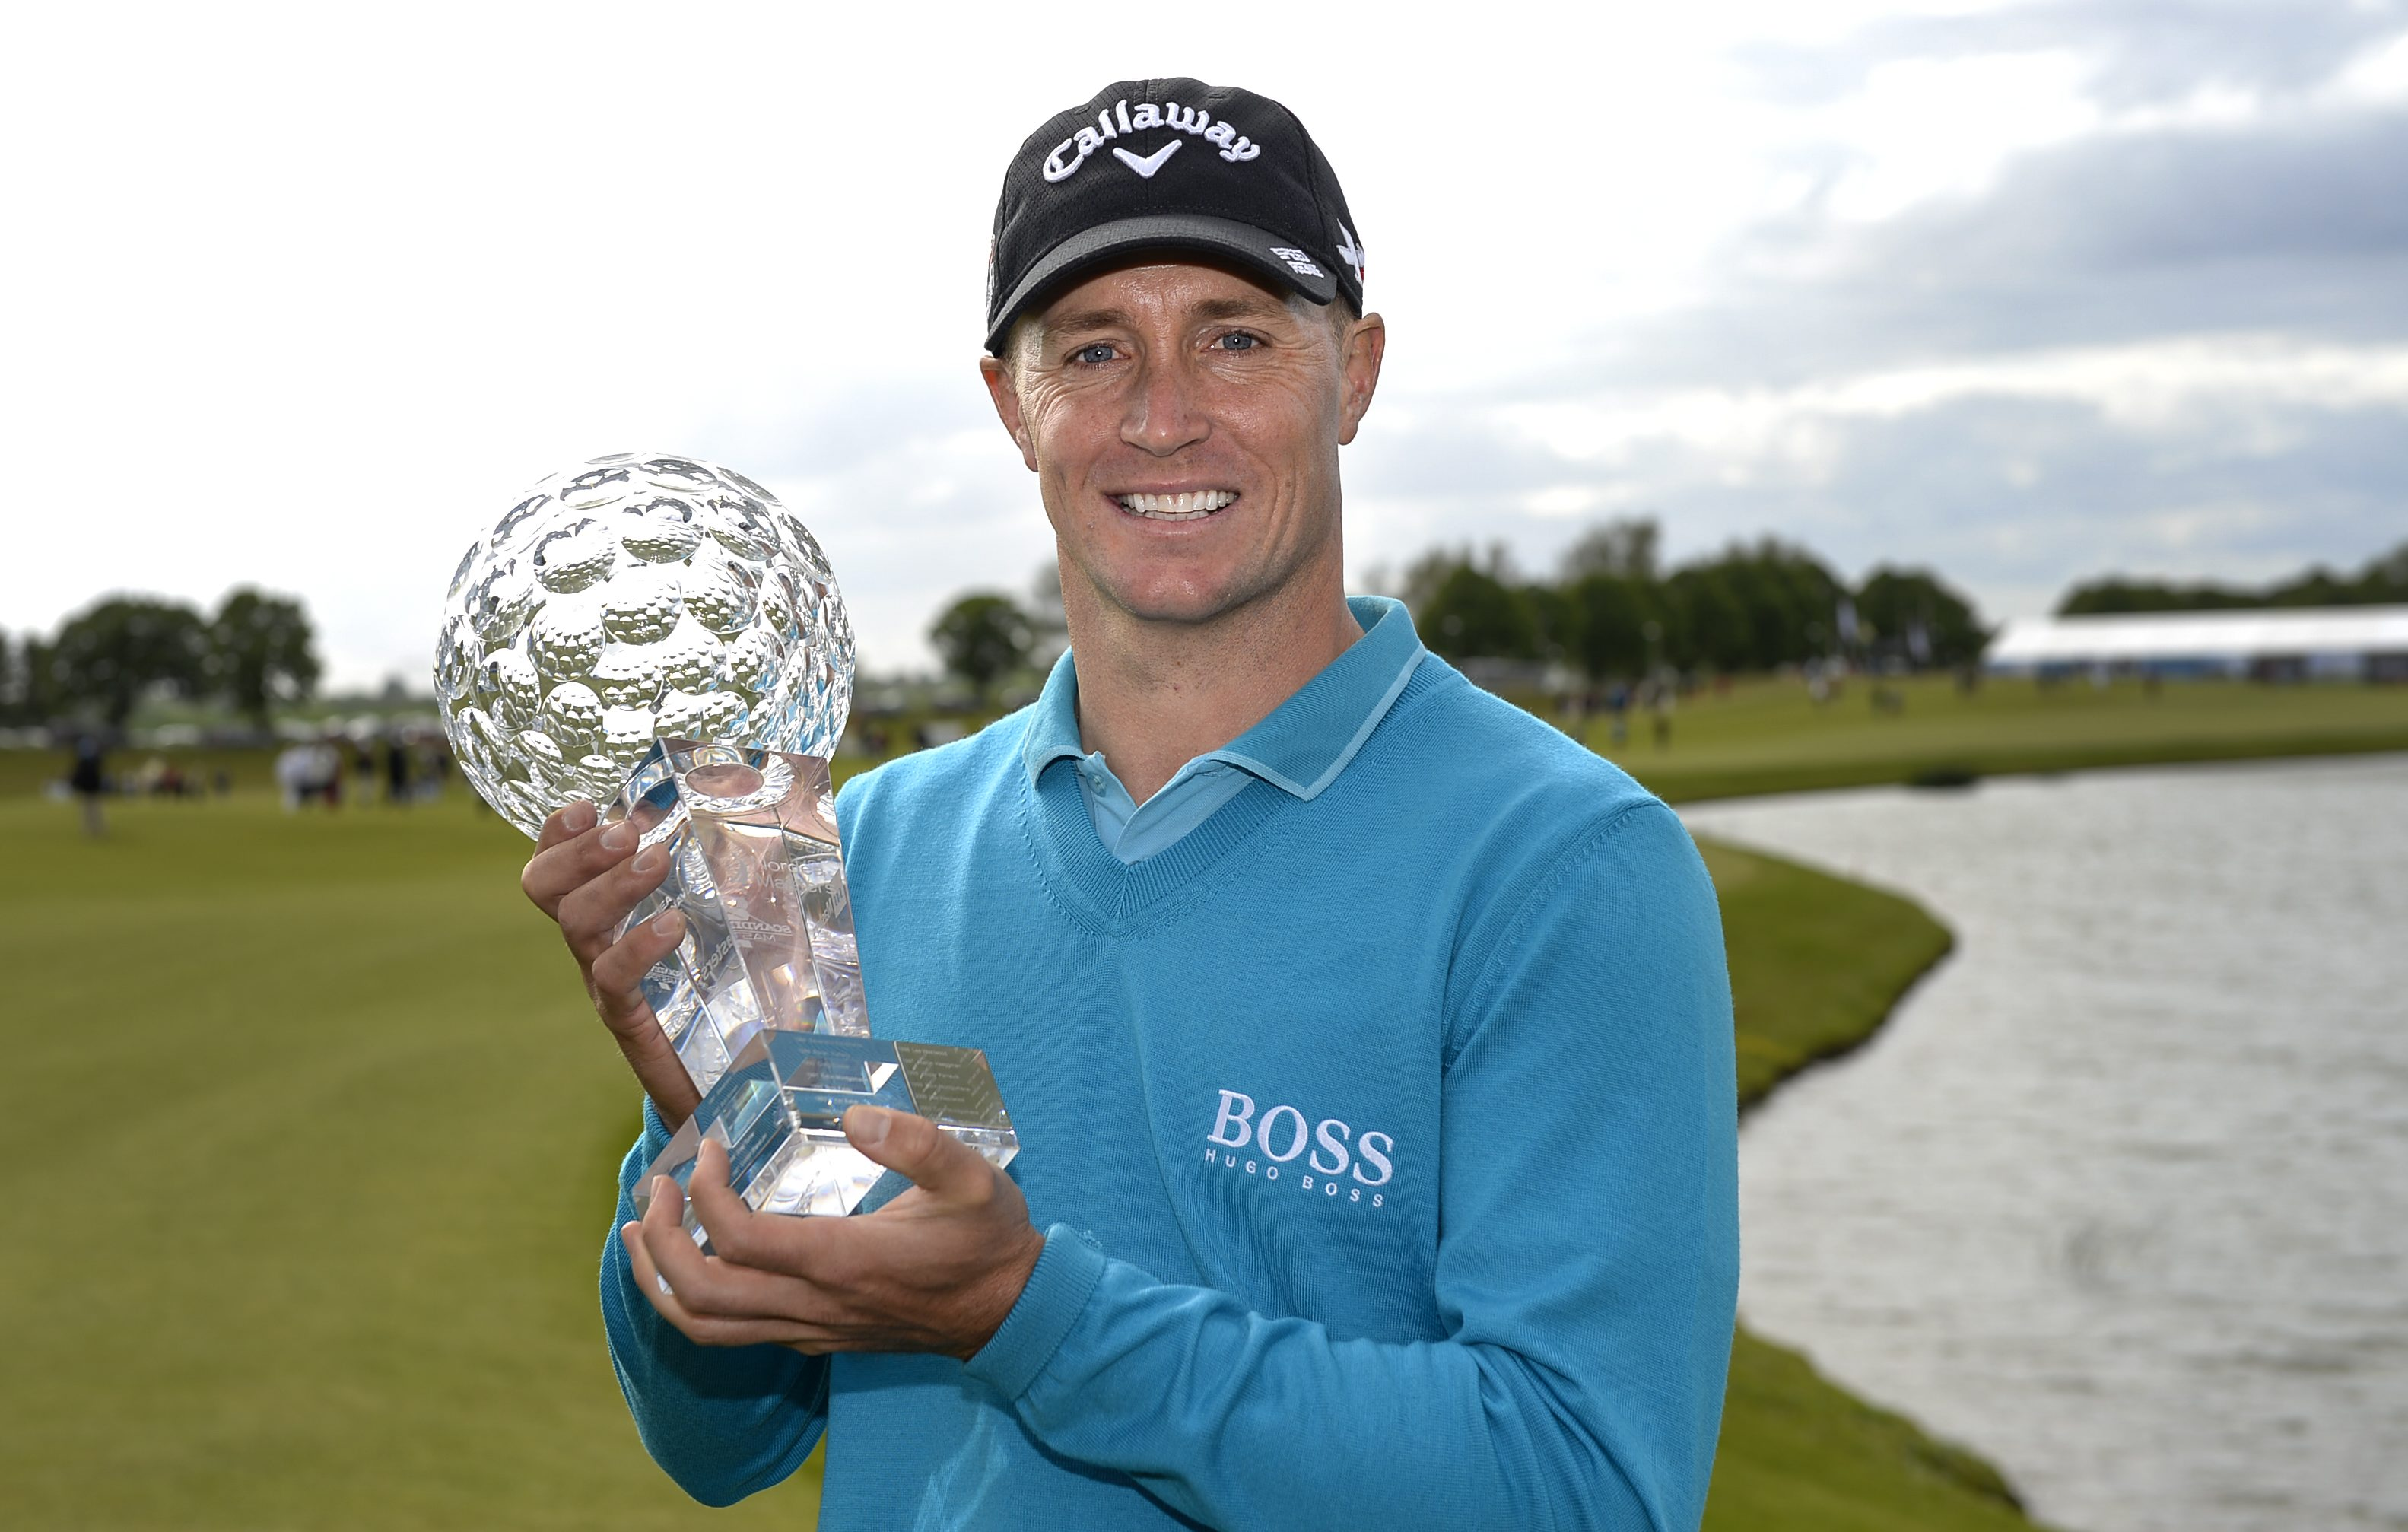 Sweden's Alex Noren poses with the trophy after winning the Nordea Masters at the PGA National Golf Course outside Malmo, Sweden on Sunday, June 6, 2015.